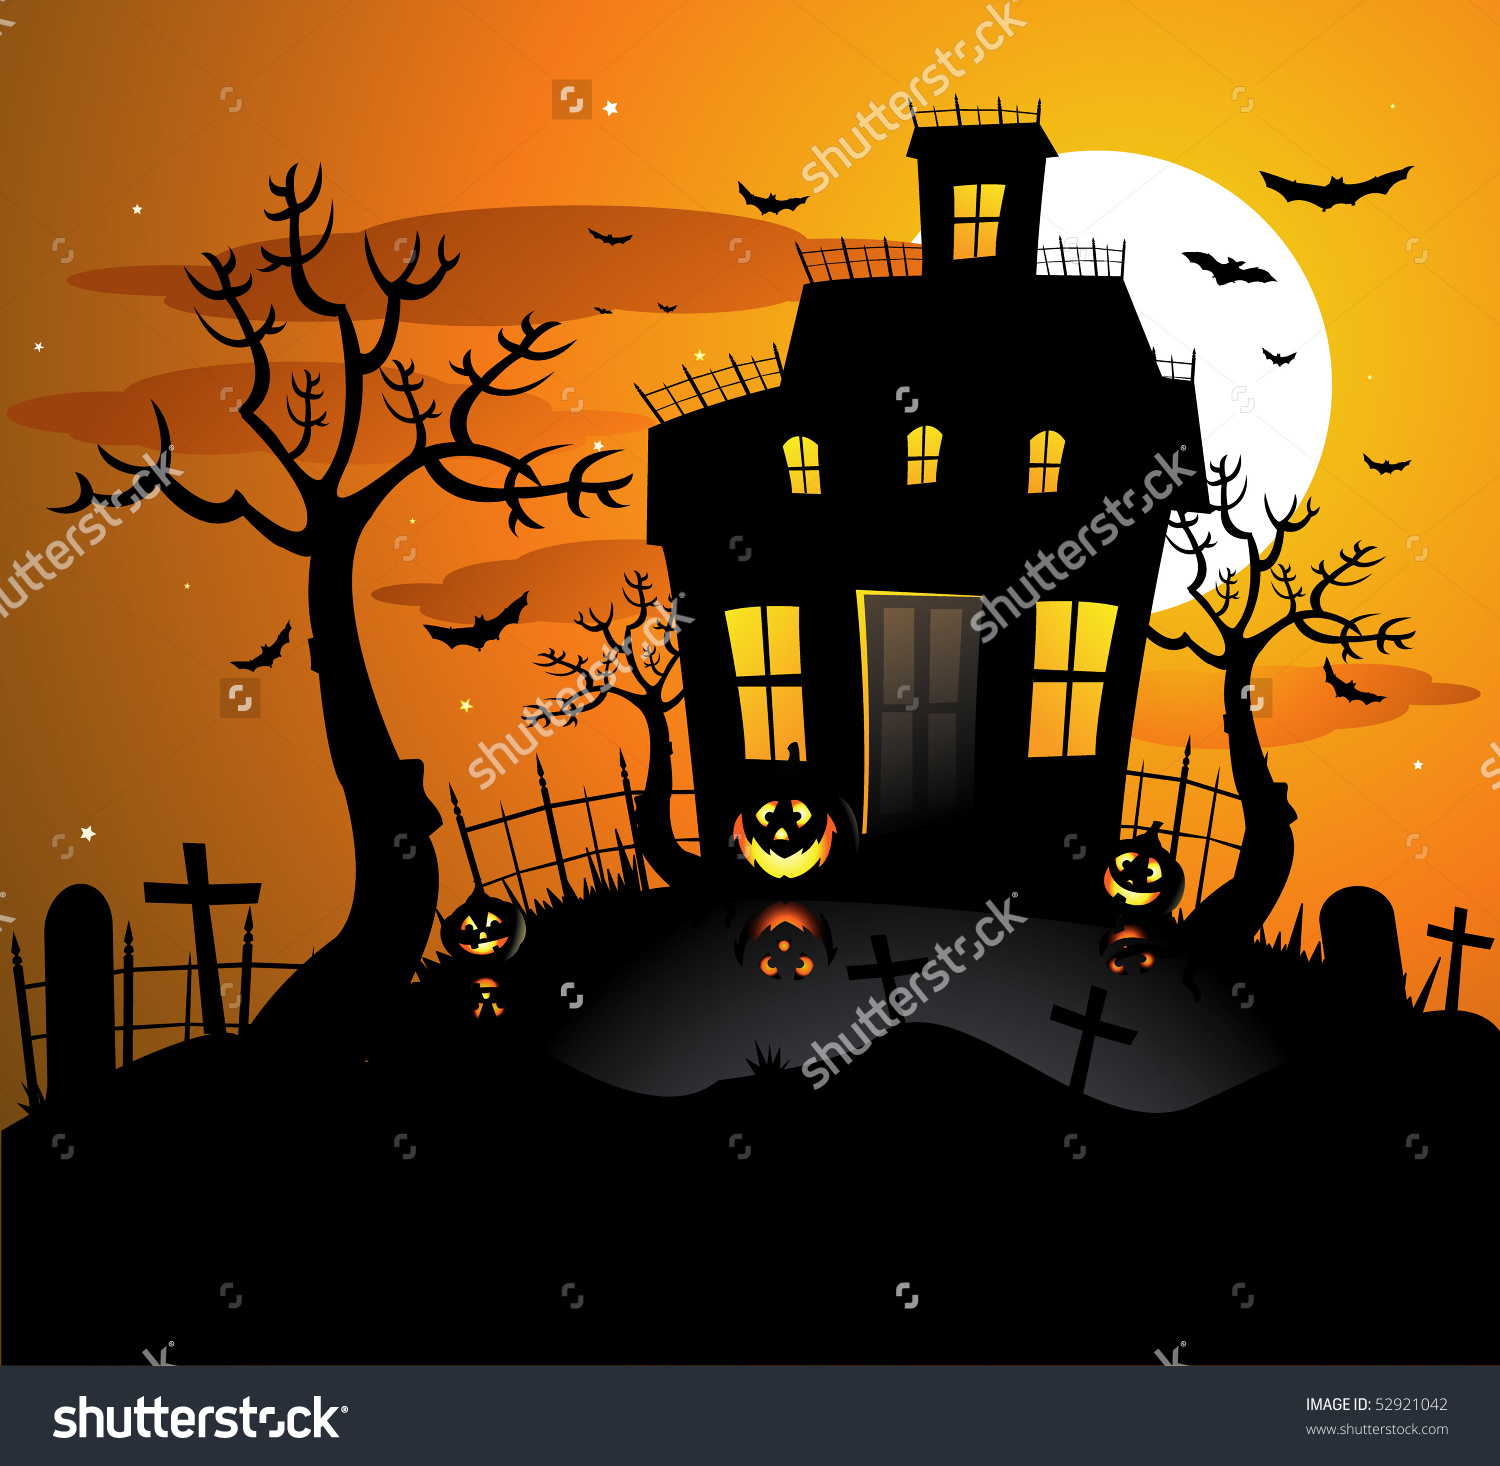 Haunted House Halloween Background Stock Vector 52921042.